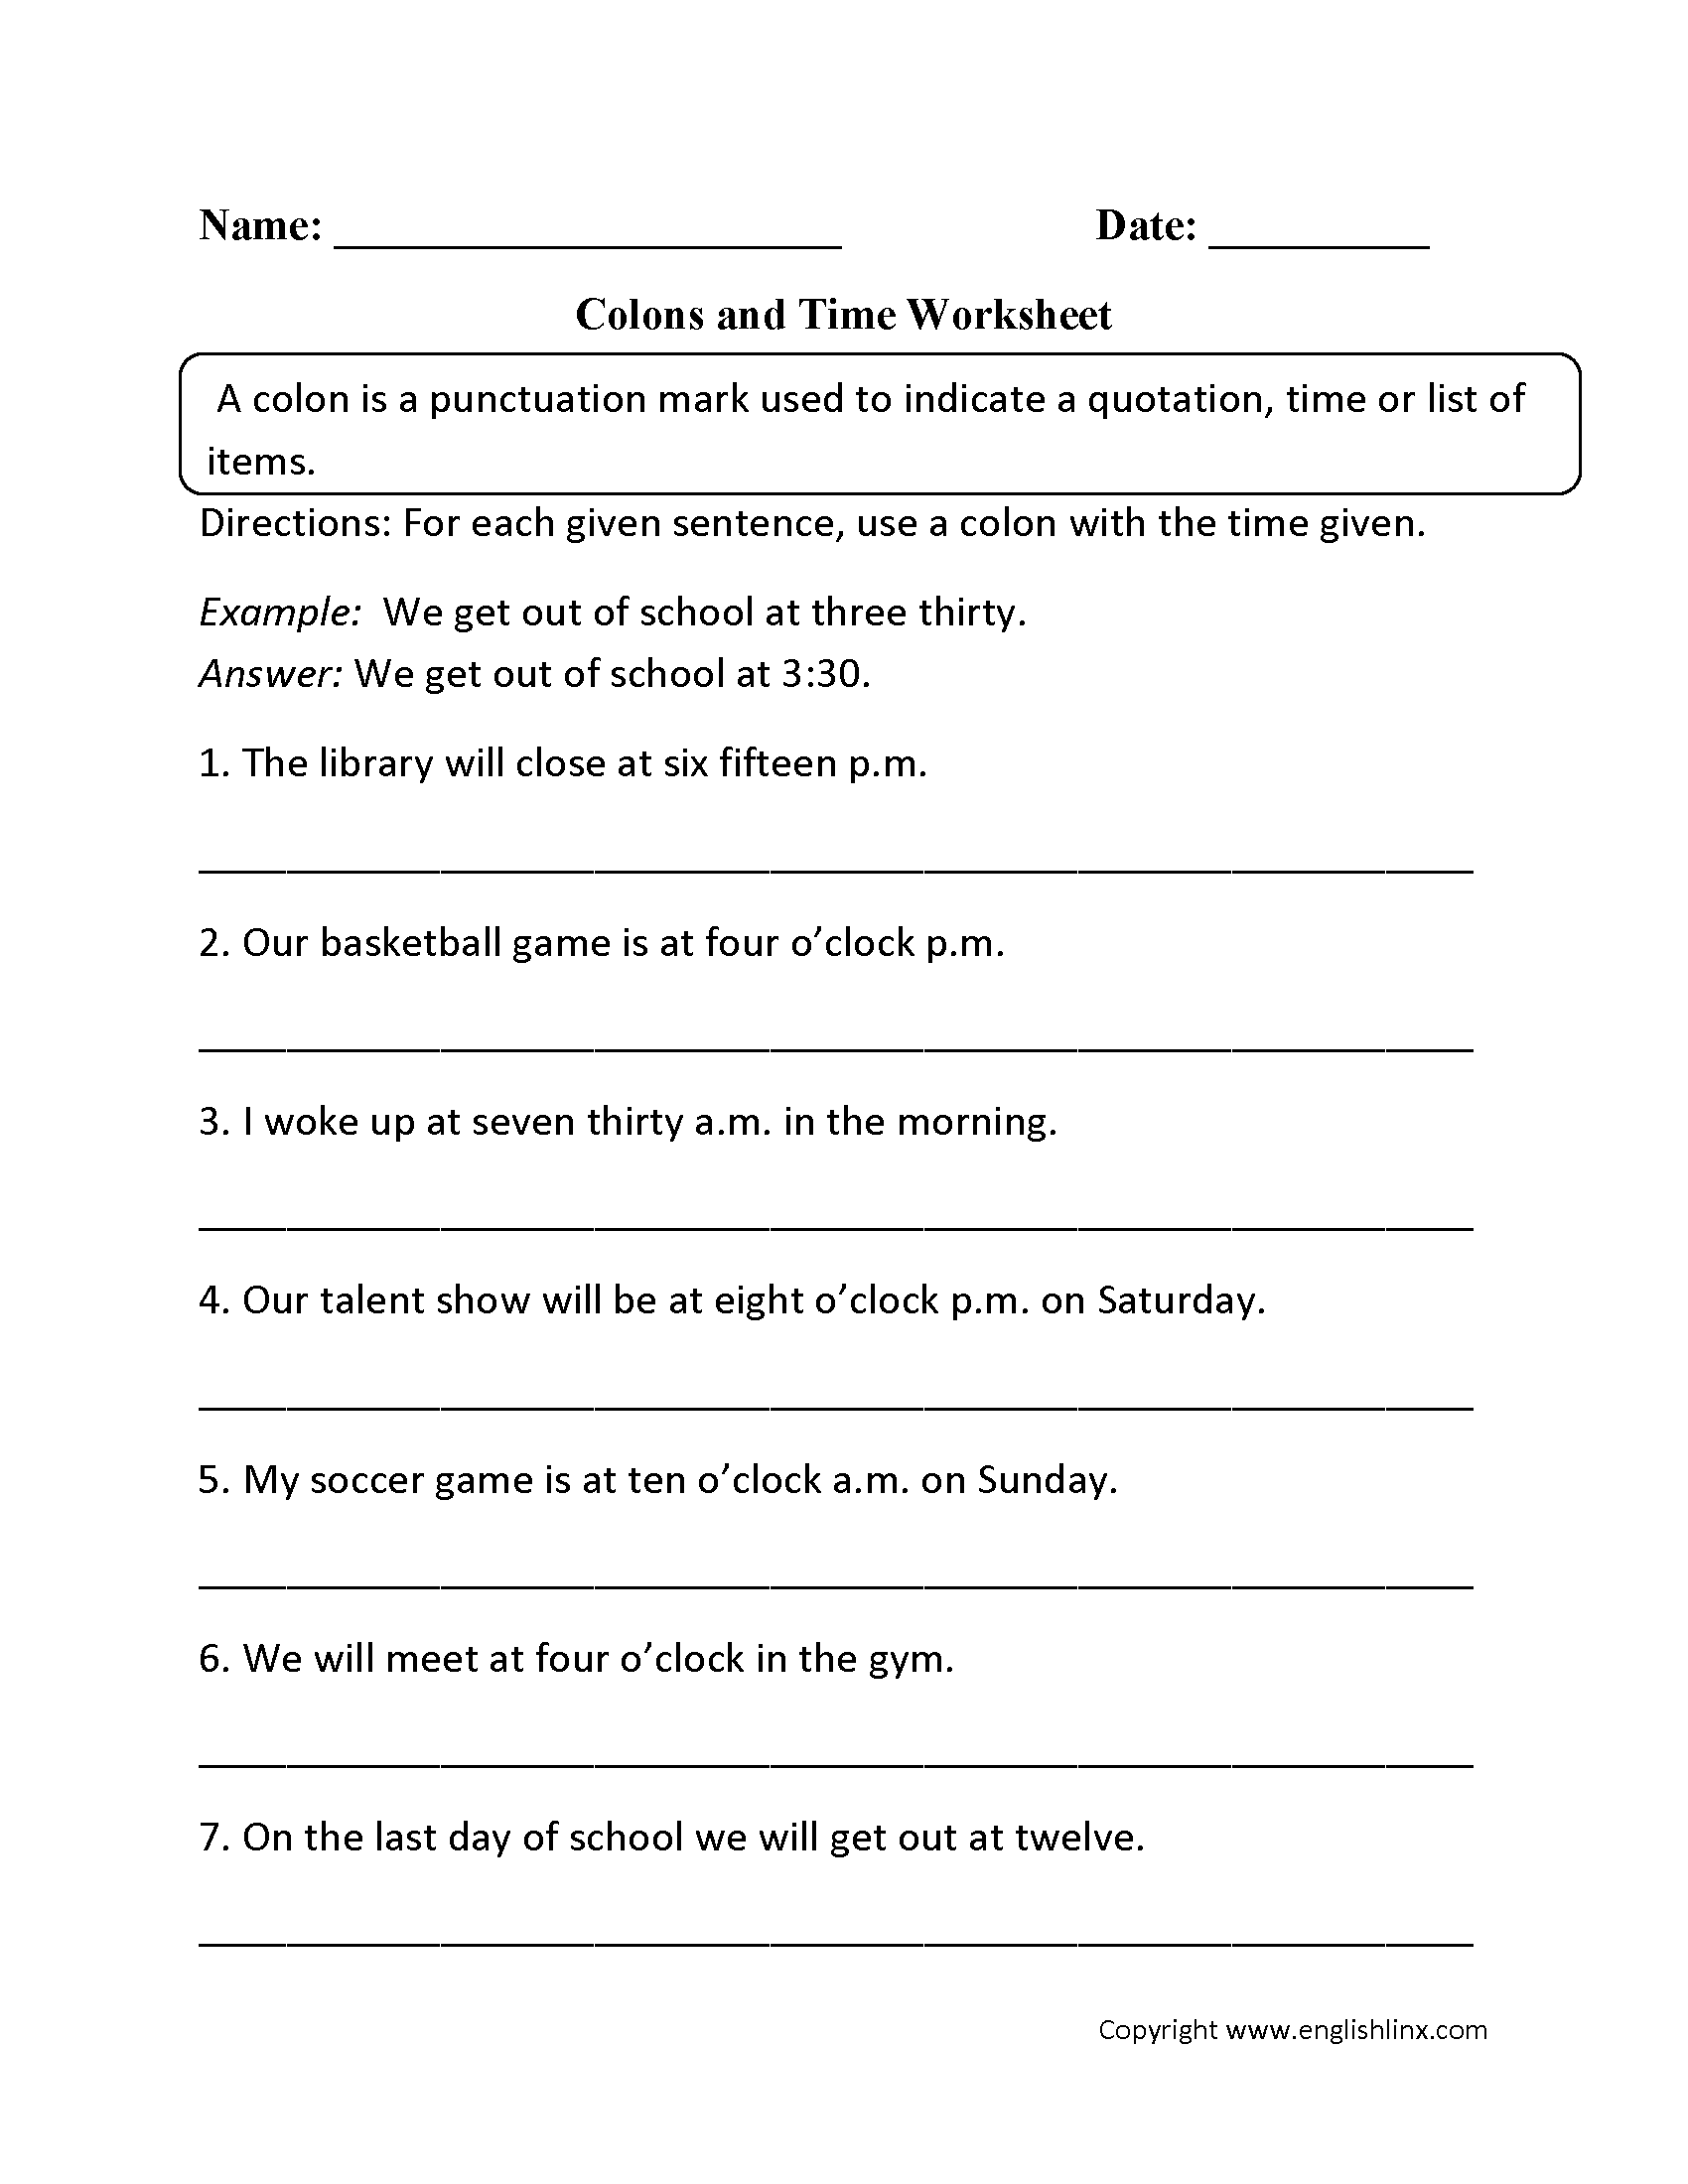 Free Worksheet Grammar Worksheets 7th Grade punctuation worksheets colon worksheets